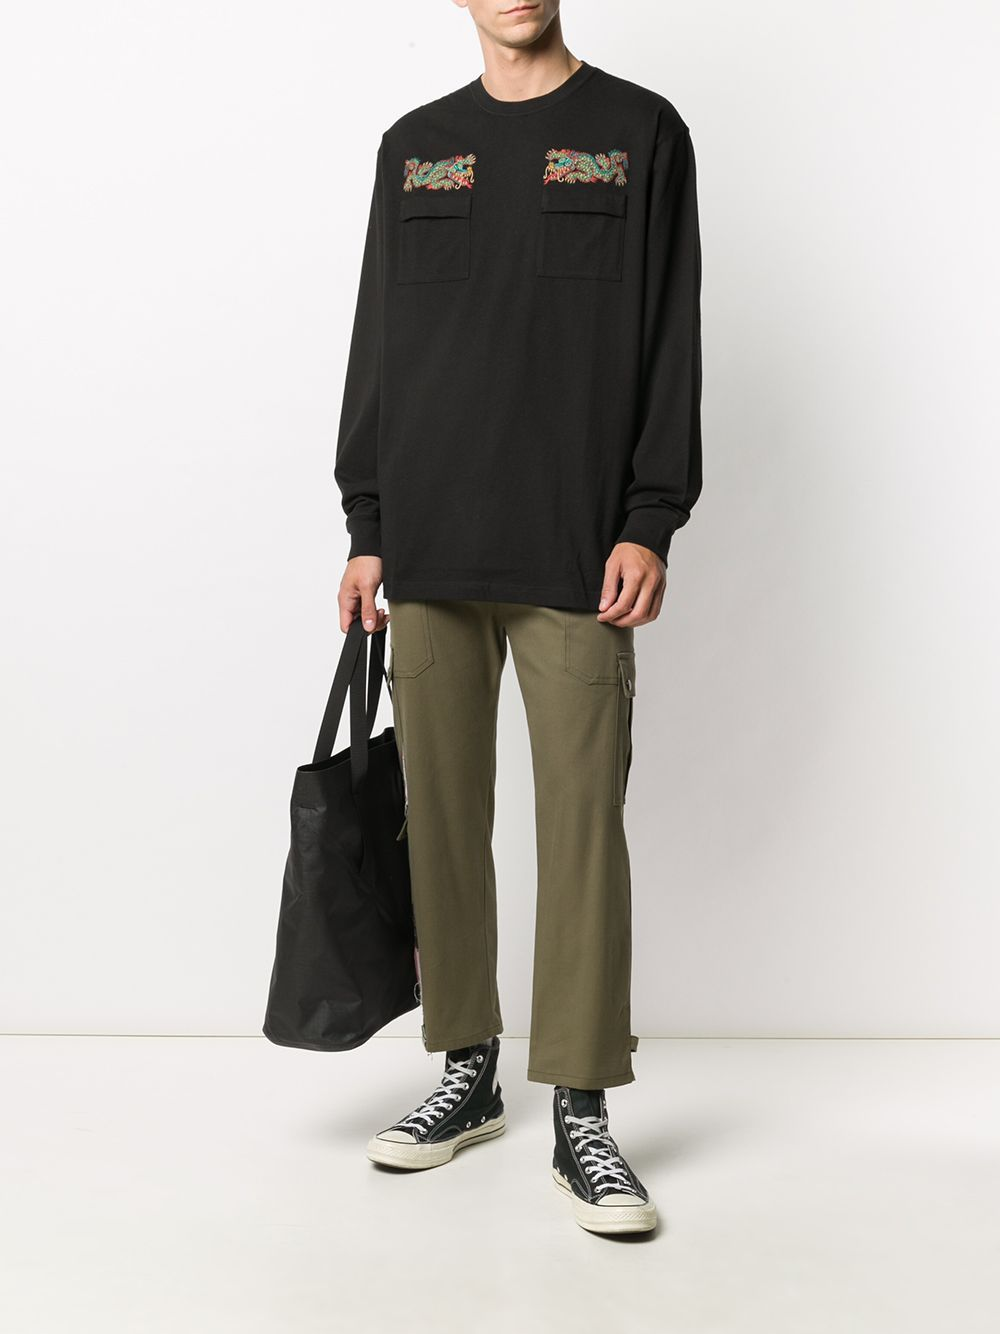 MAHARISHI Liberty Dragon Long Sleeve T-Shirt Black